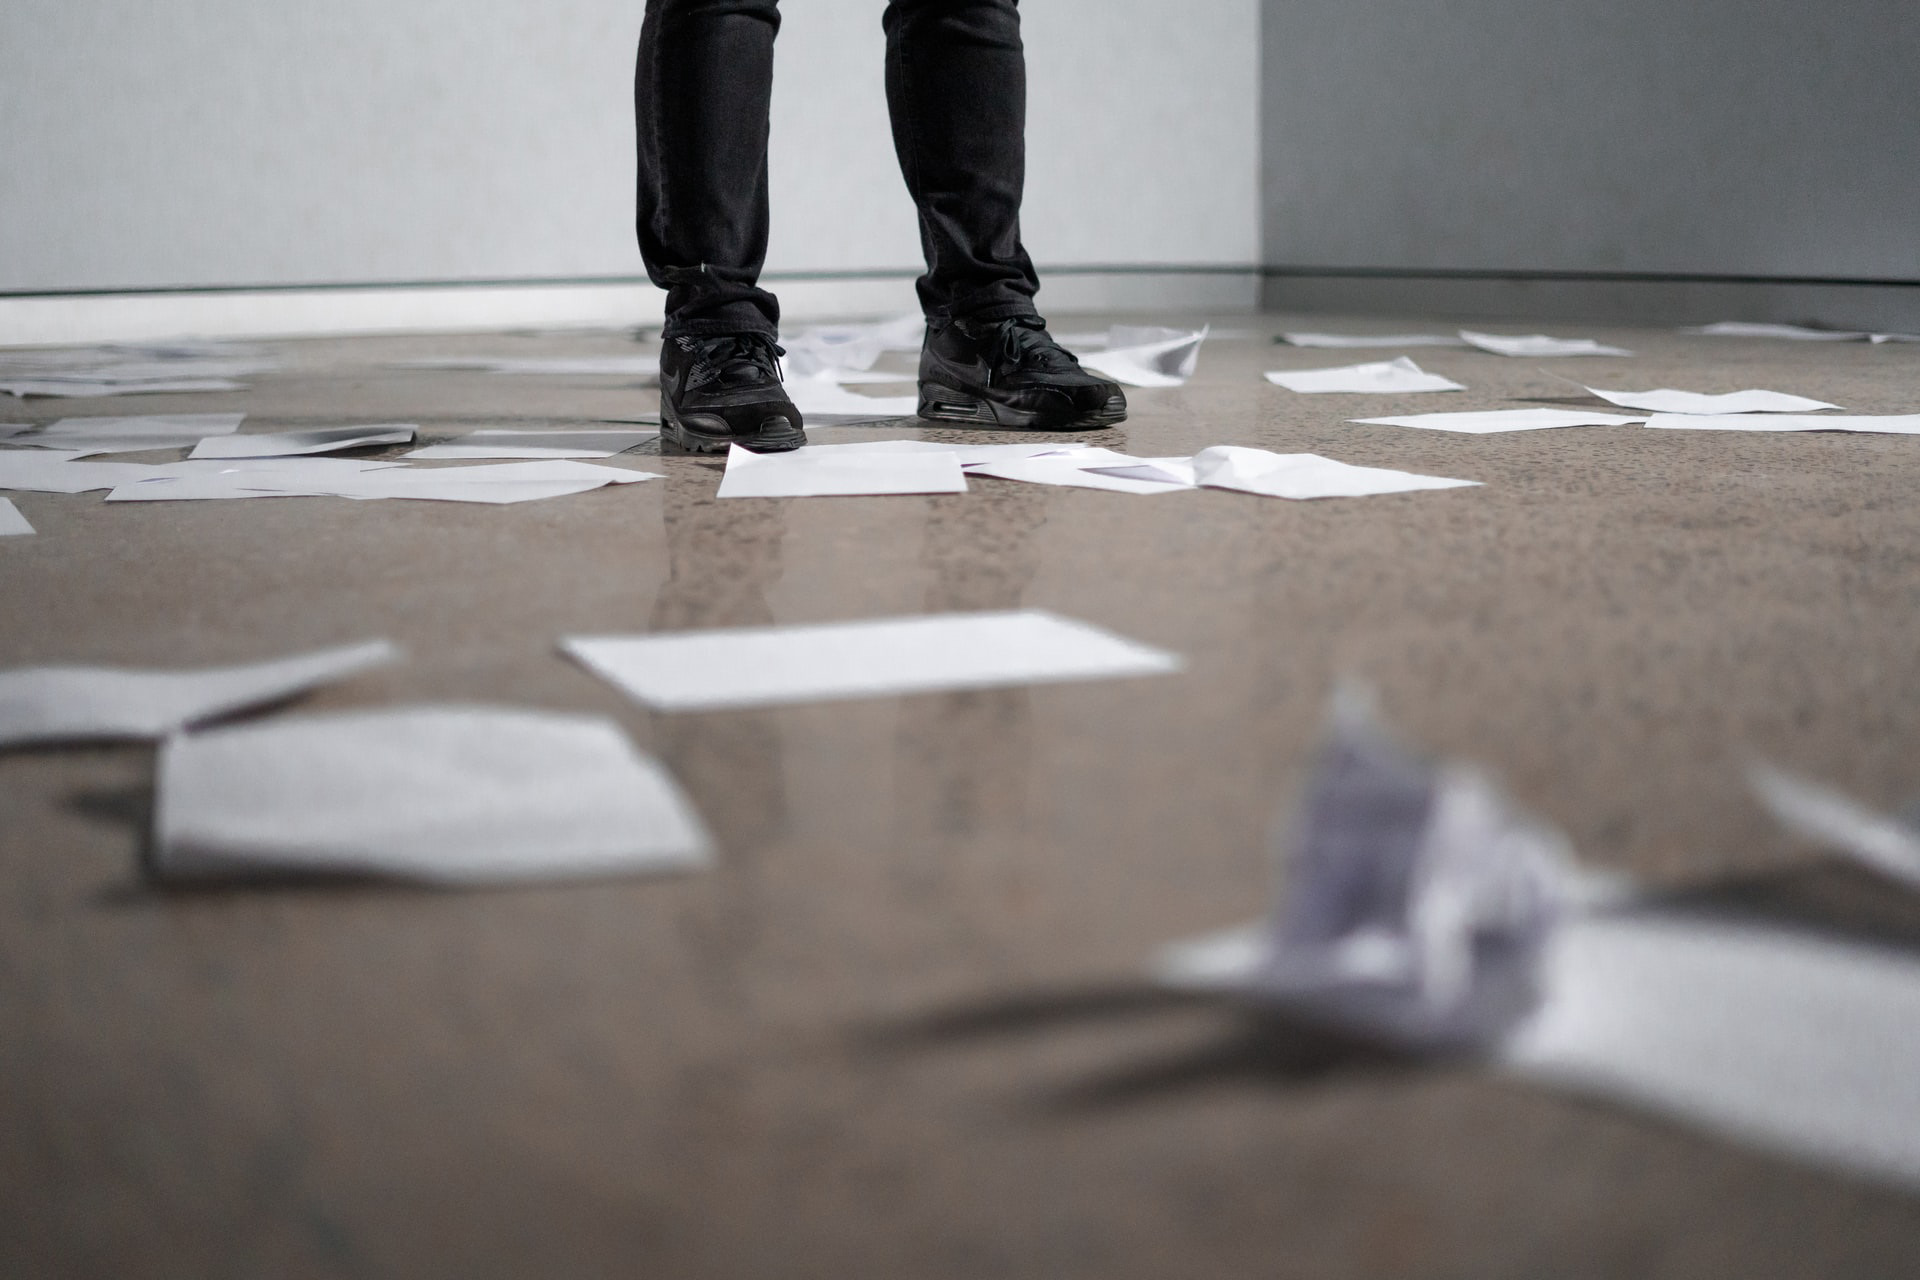 Feet on floor with papers